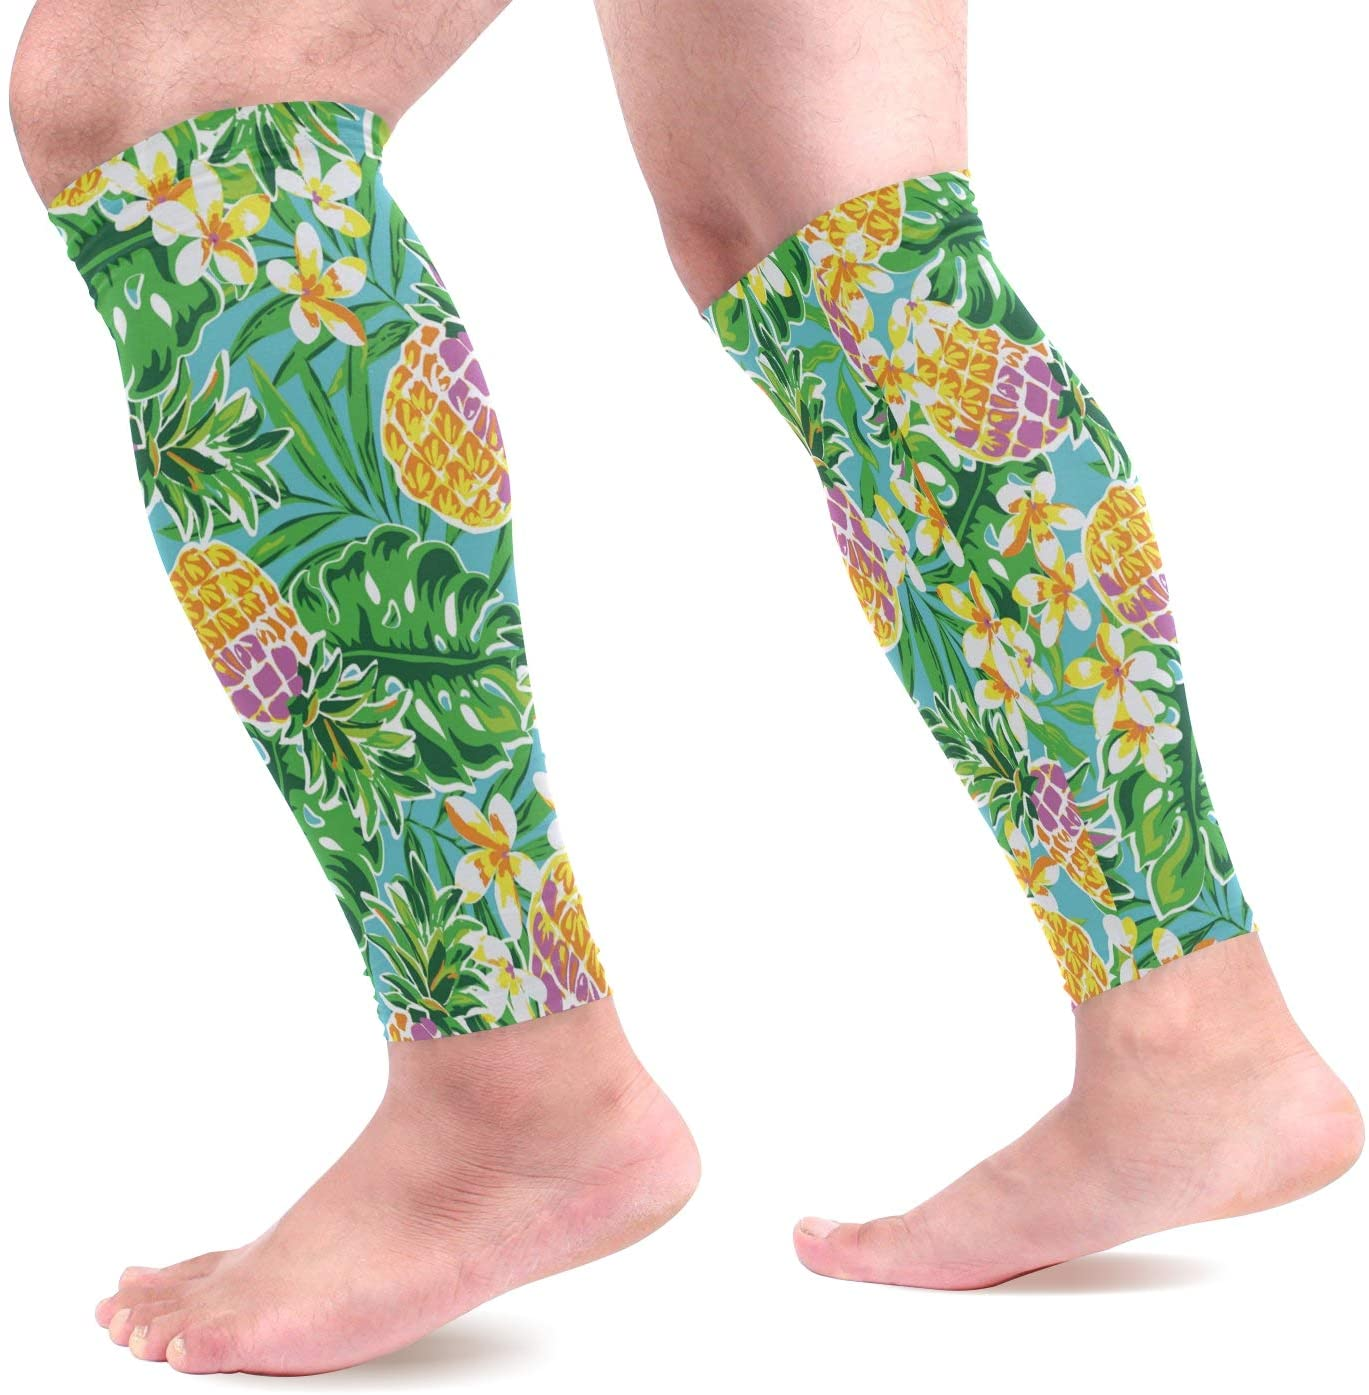 Calf Compression Sleeves Pineapple Leaves Flowers Tropical Green Leg Compression Socks for Runners, Shin Splint, Varicose Vein & Calf Pain Relief - Calf Guard for Running, Cycling, Nurses Women